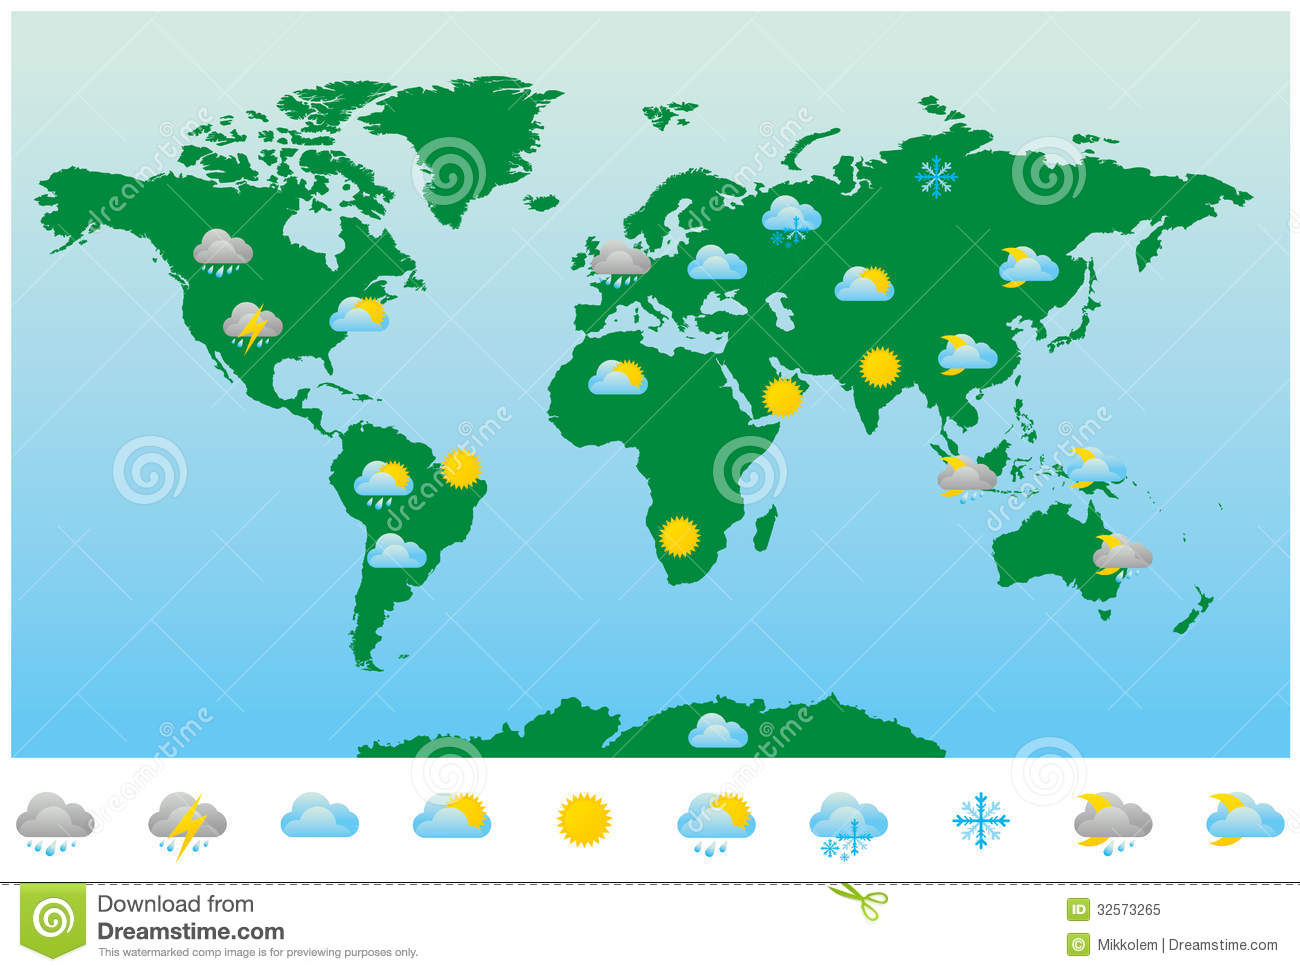 World Weather Forecast Map And Icons Royalty Free Stock Photo ... WORLD WEATHER MAP